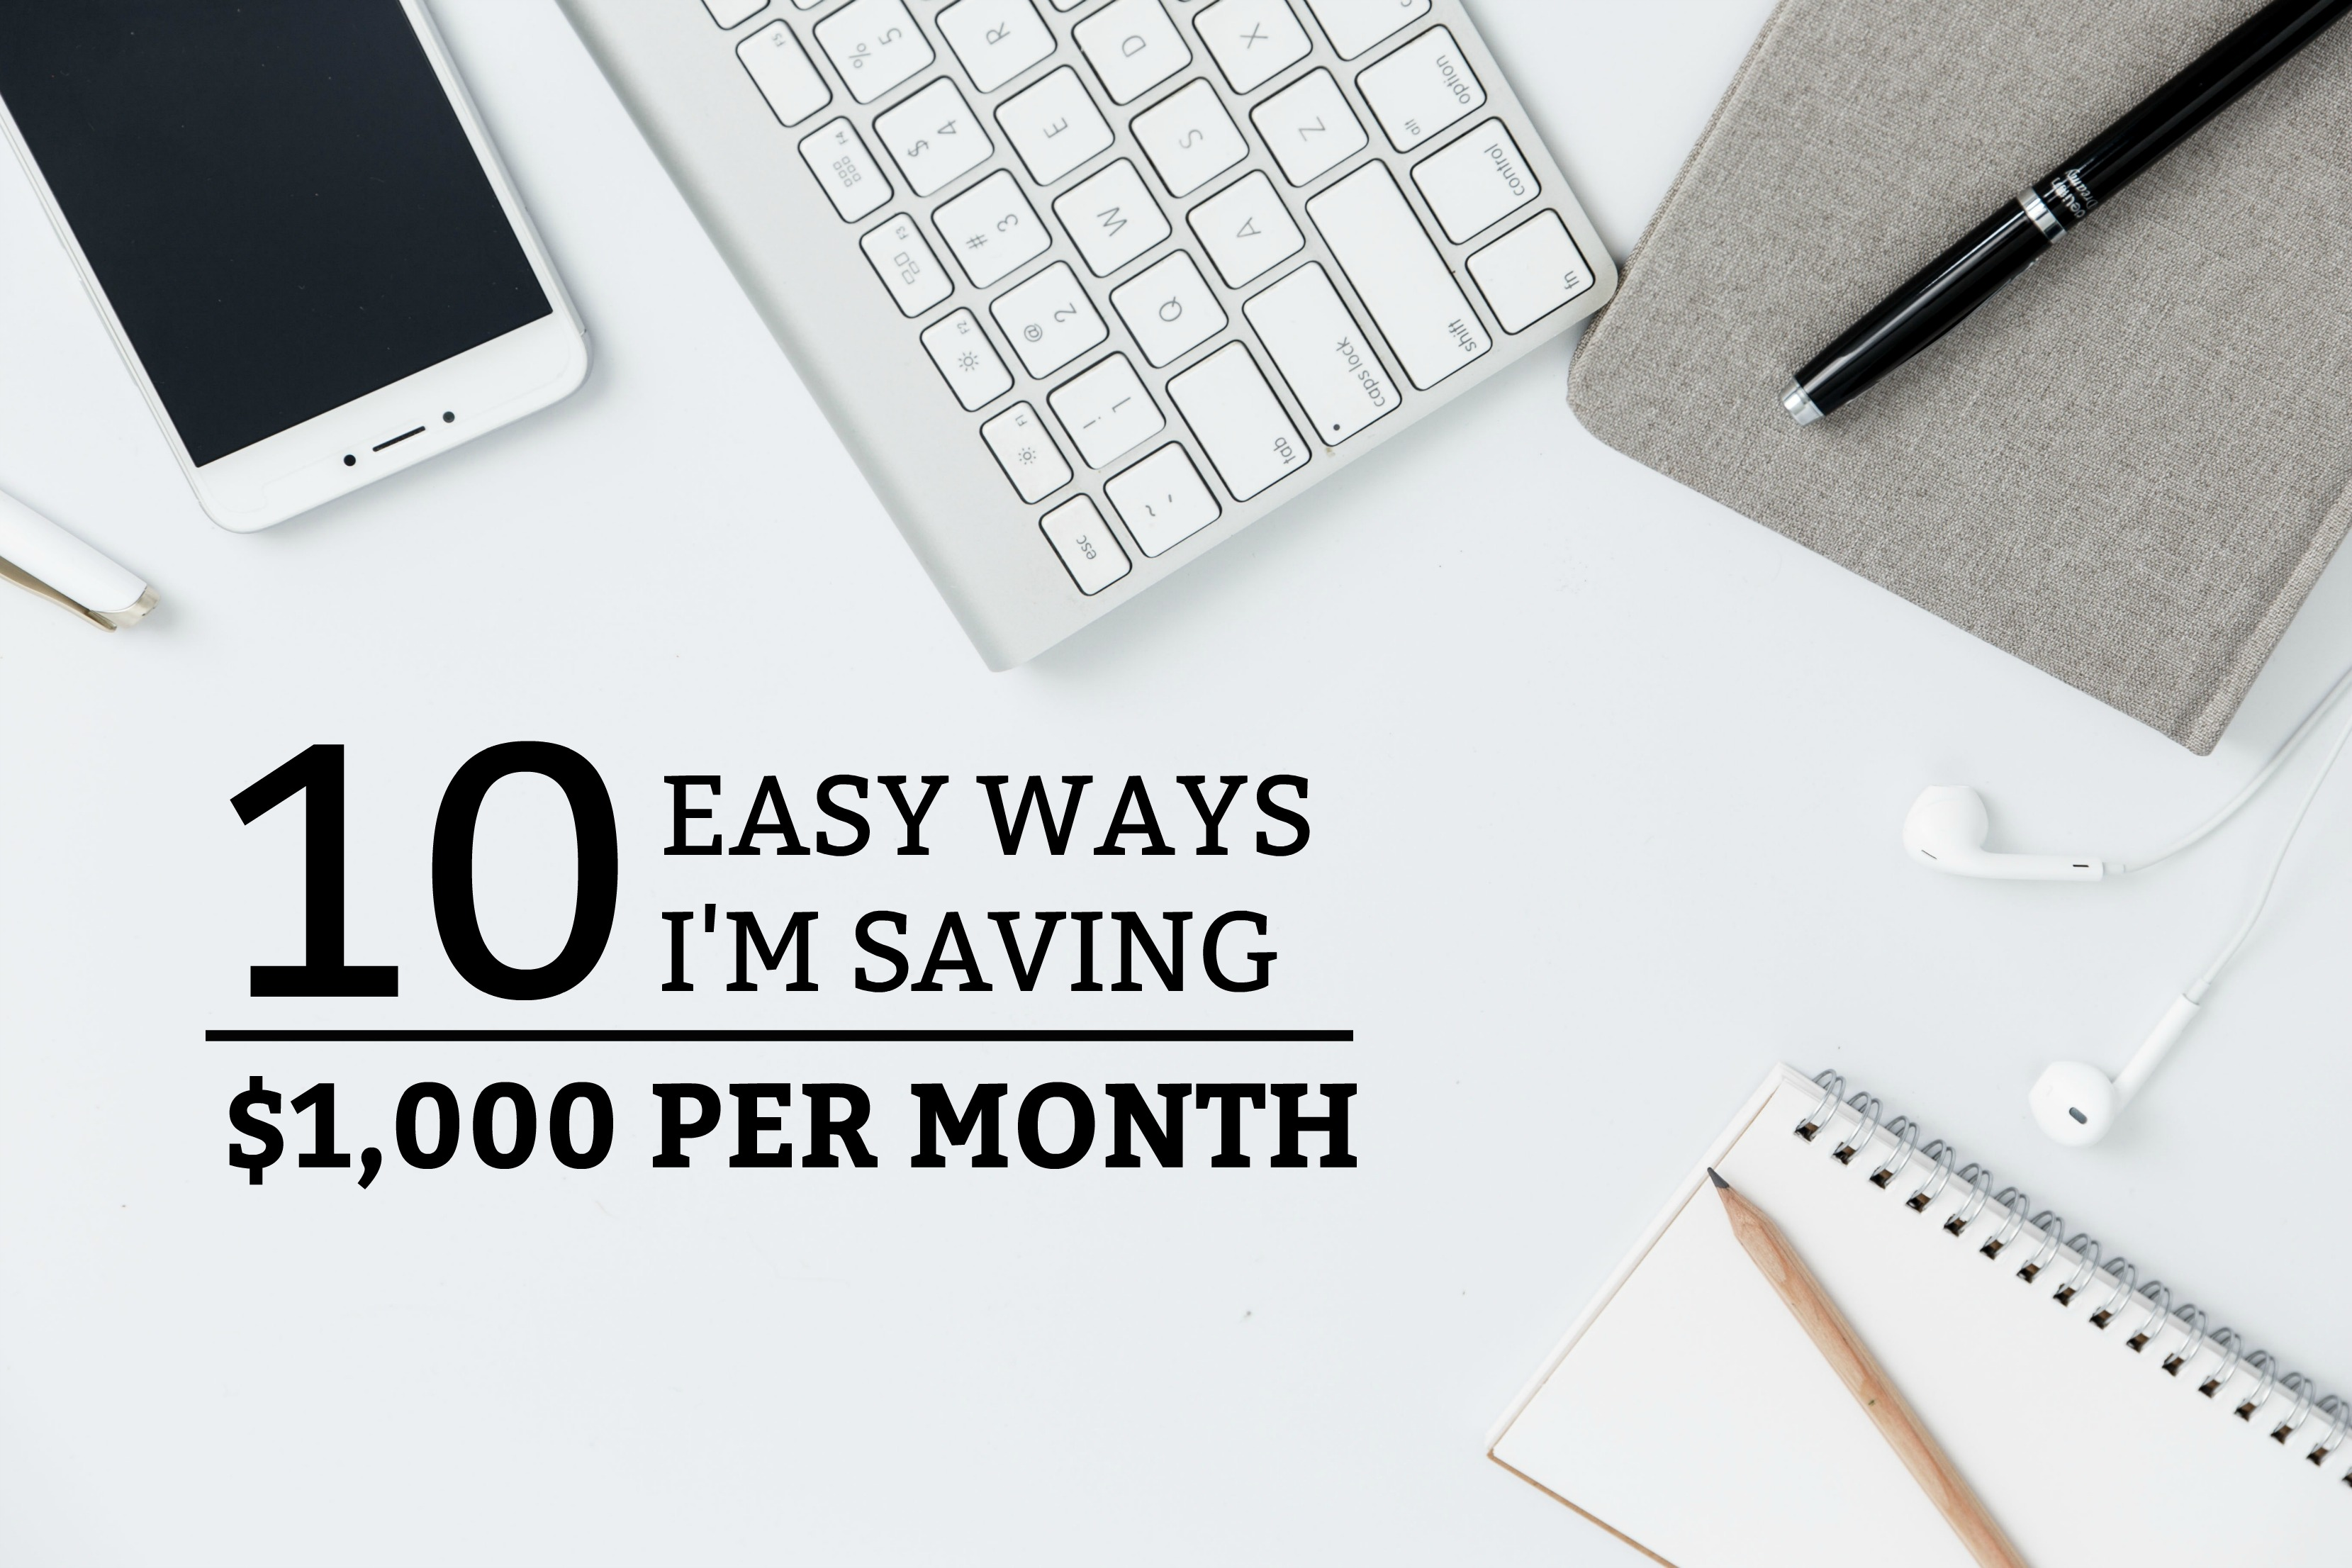 10 Easy Ways I'm Saving $1,000 Per Month - a practical guide on how to earn and save extra money each month. www.tradingaverage.com